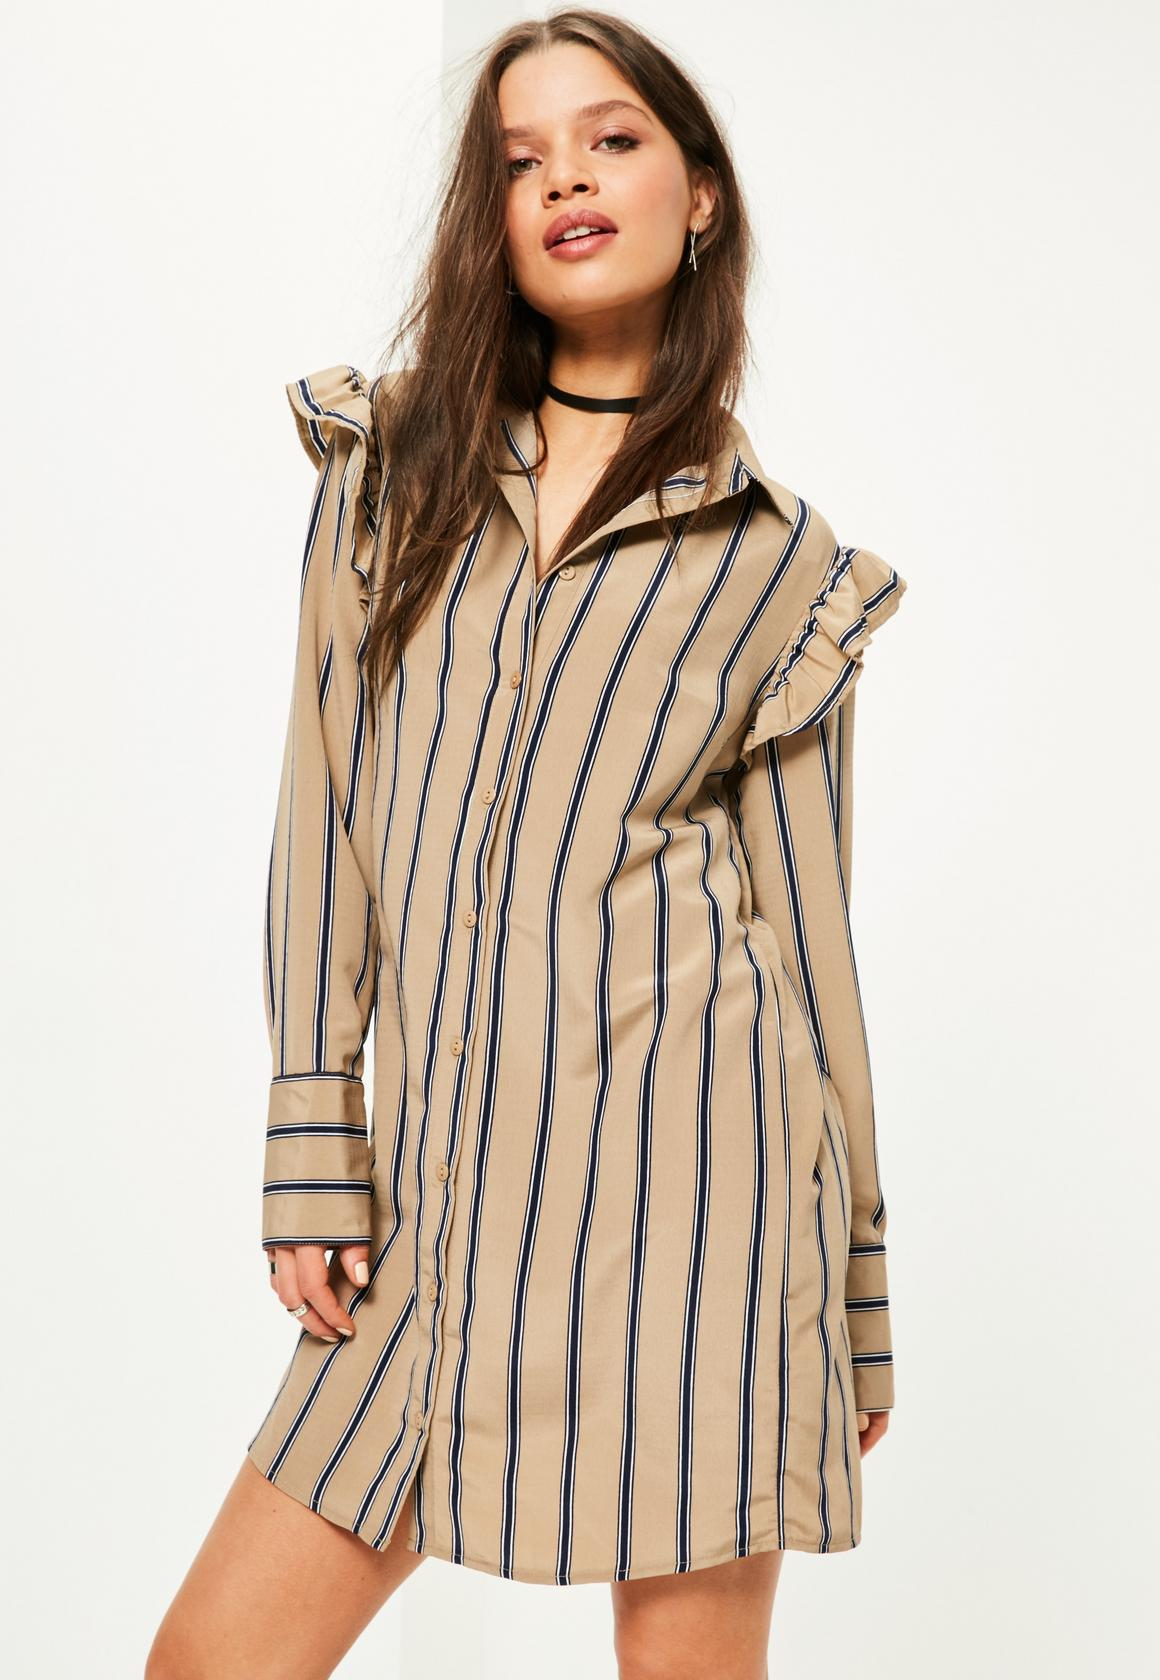 How to fashion yourself with shirt dress?